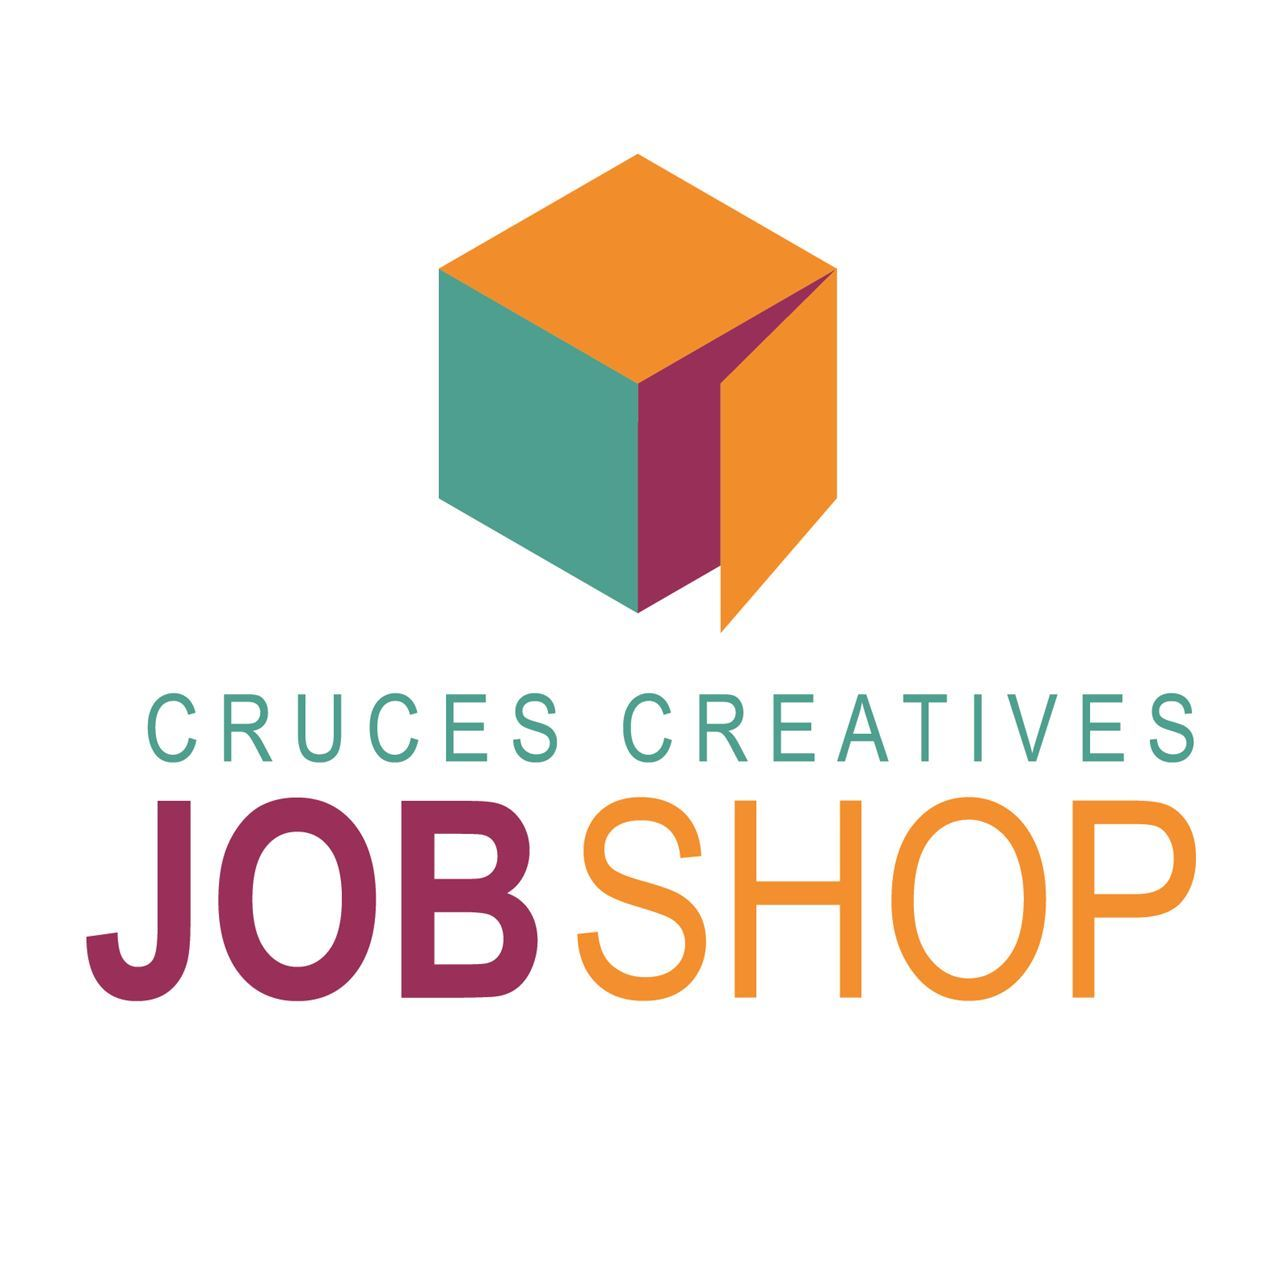 cruces creatives job shop, job shop, cruces creatives